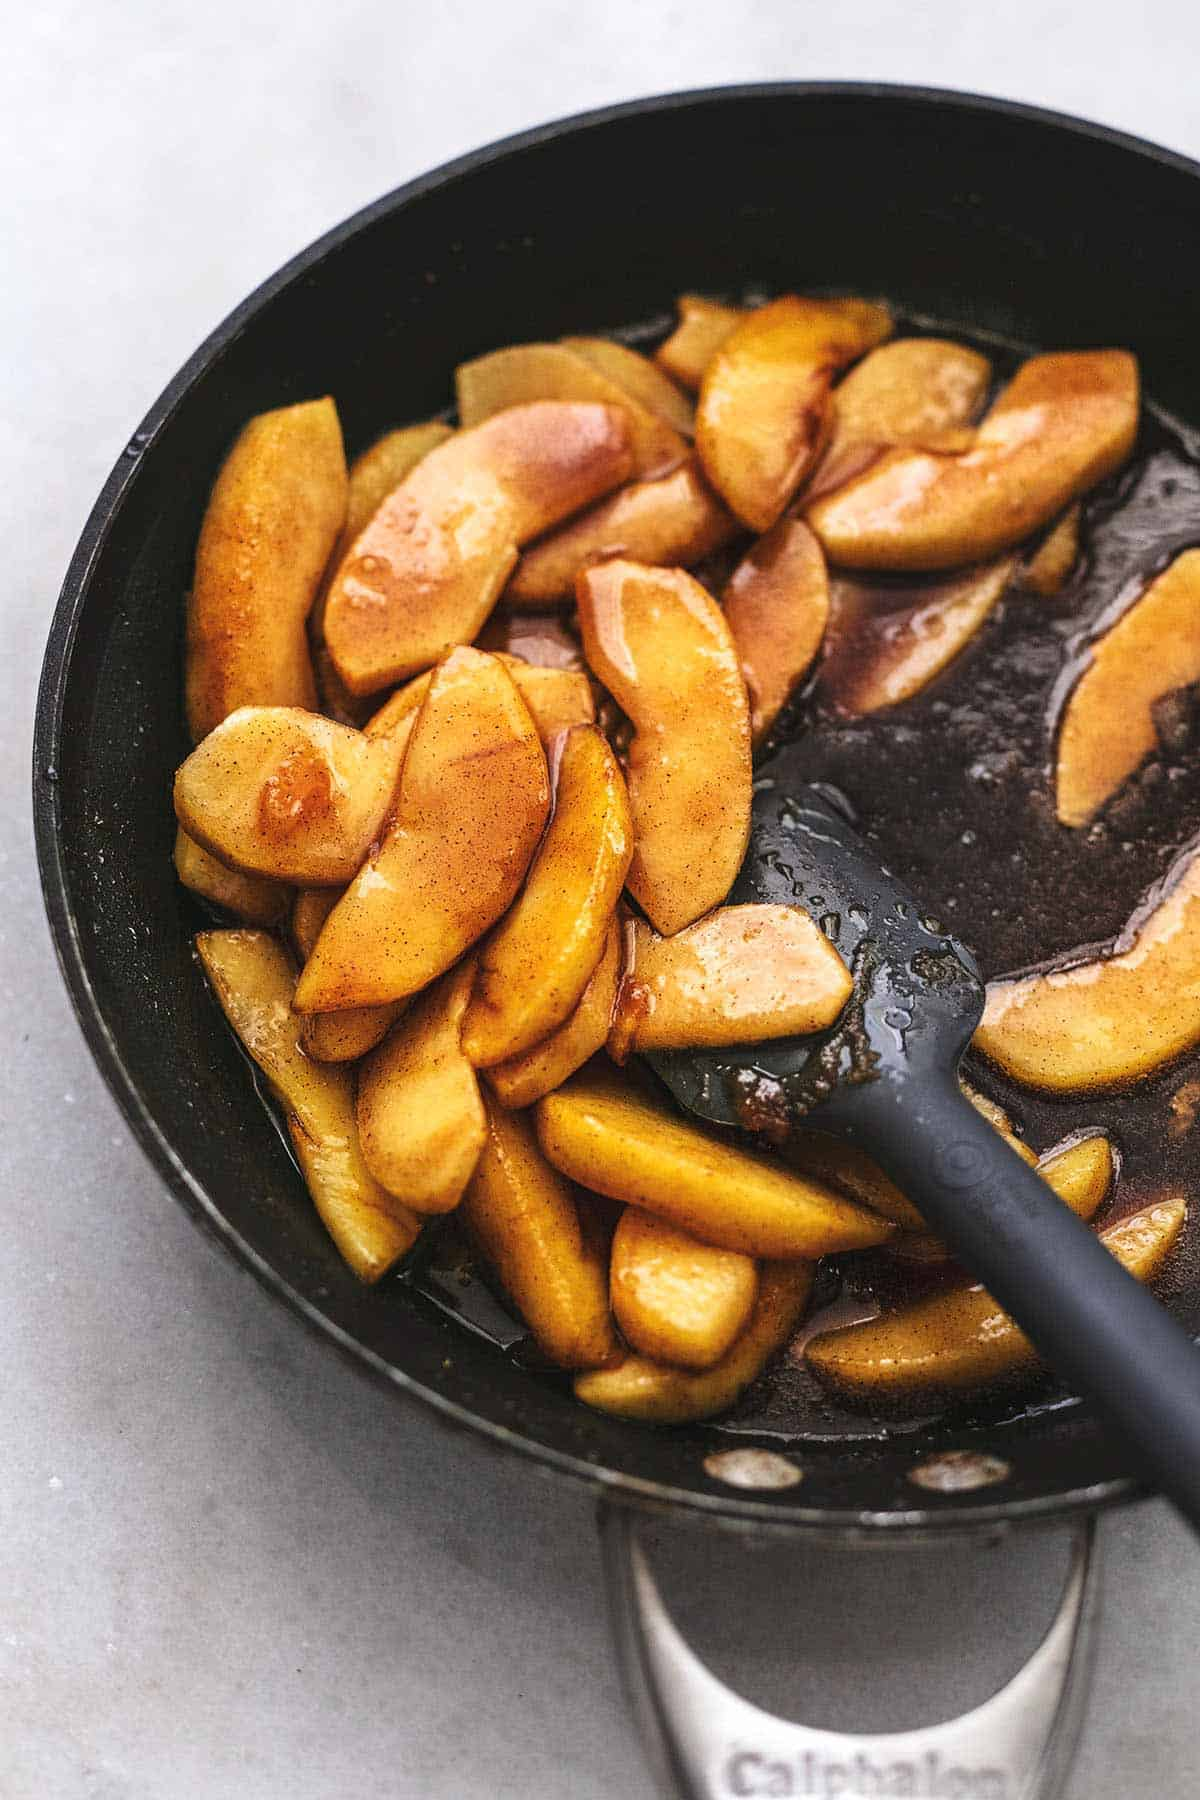 sauteed apple slices in caramel sauce in skillet with rubber spatula